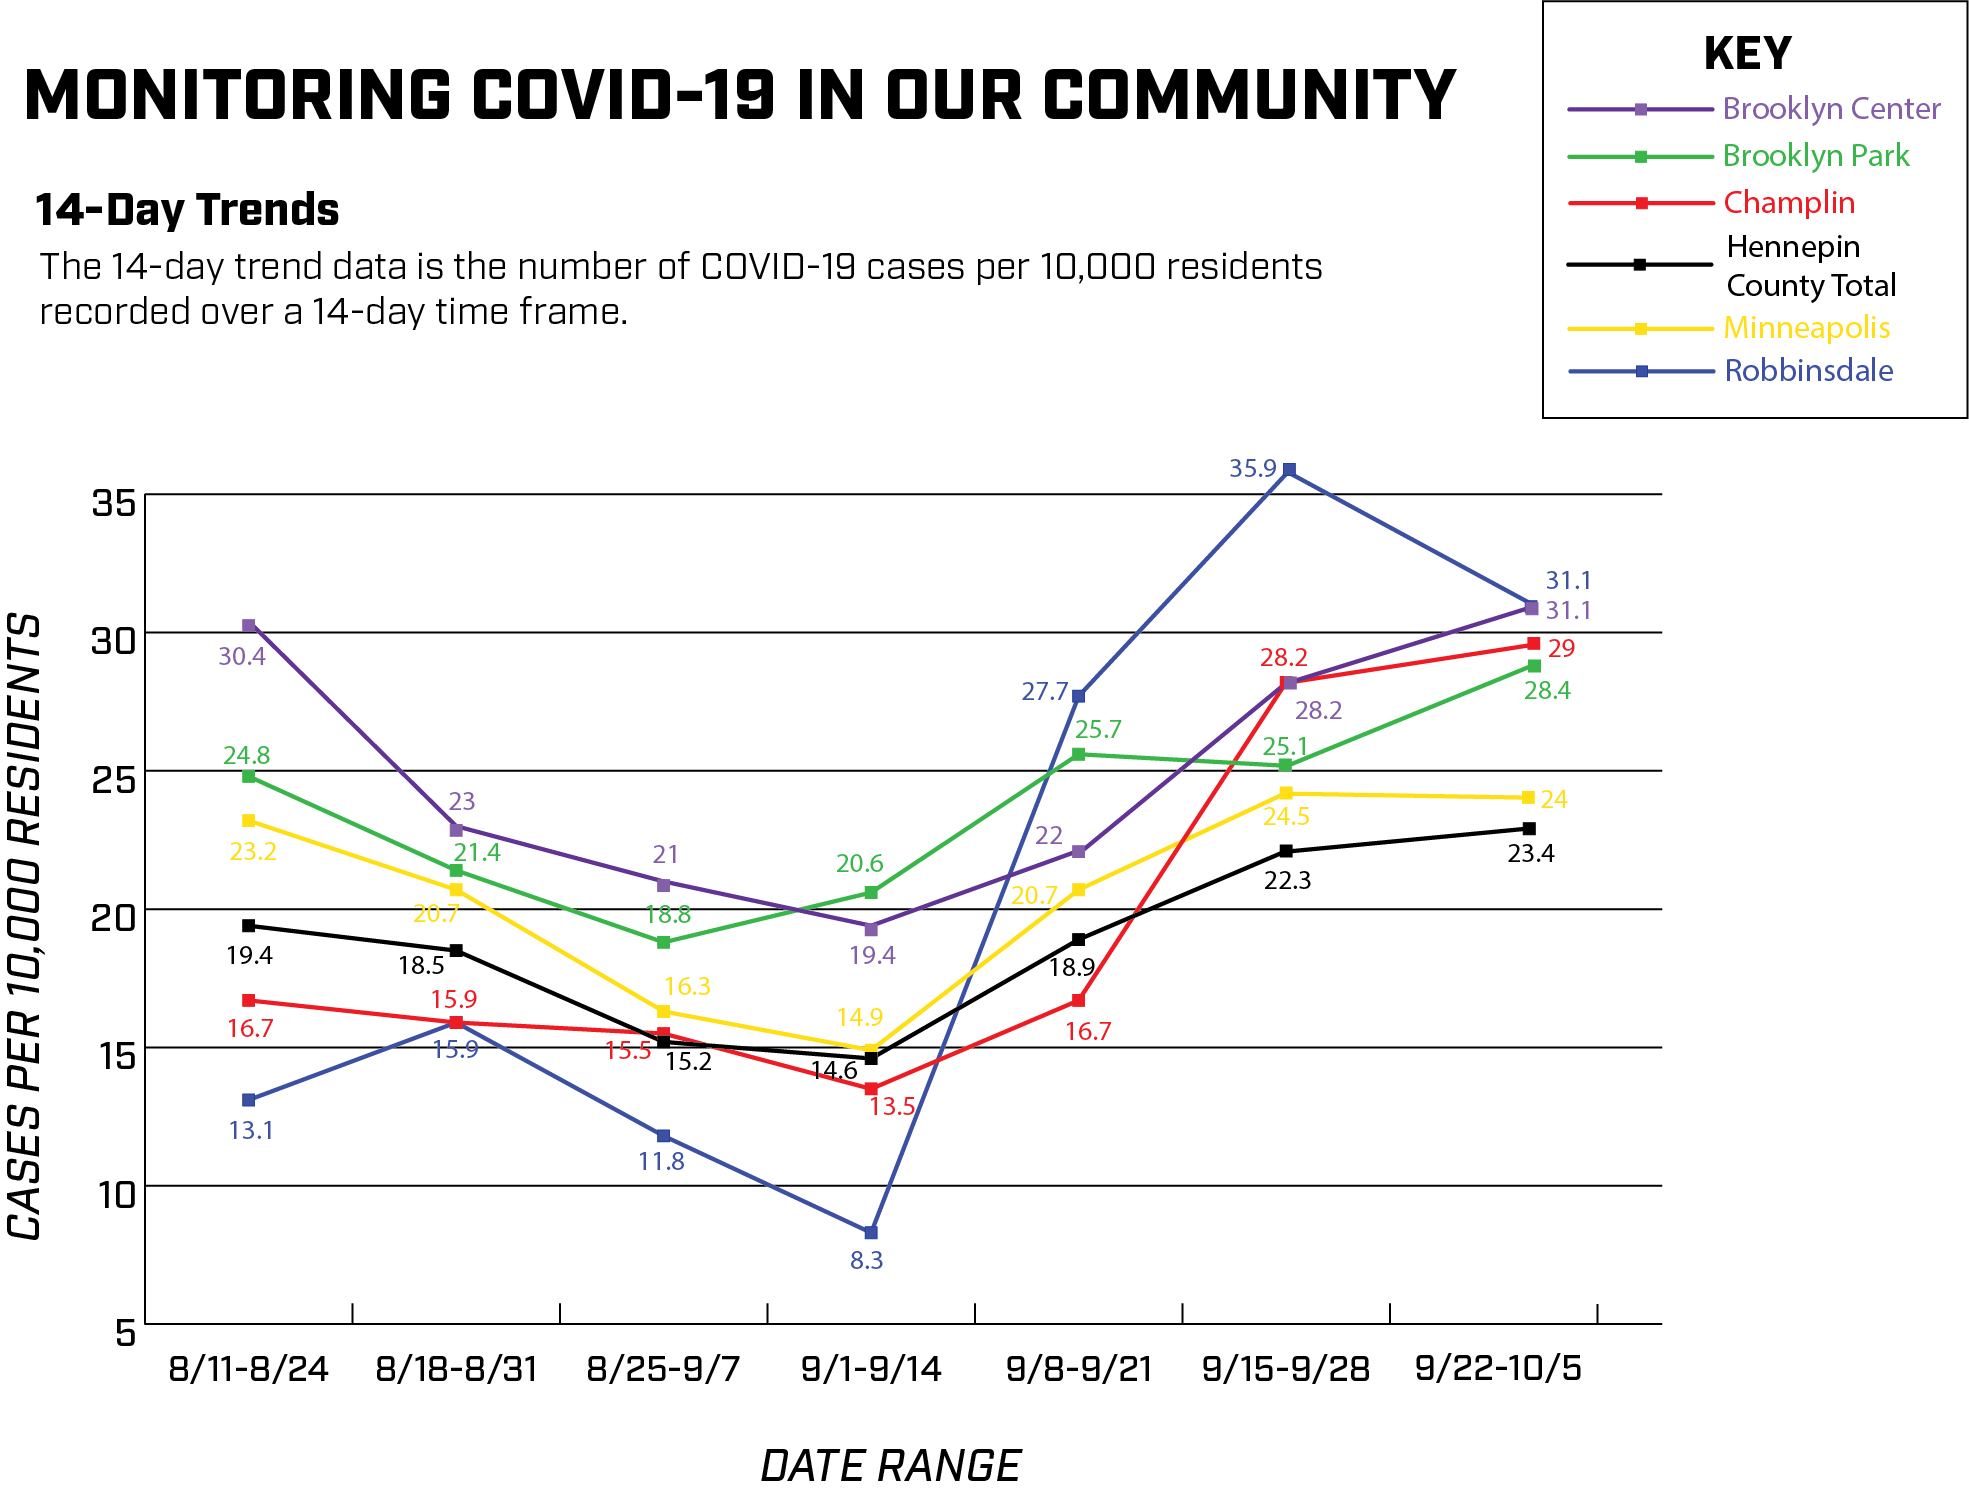 Monitoring COVID in our community